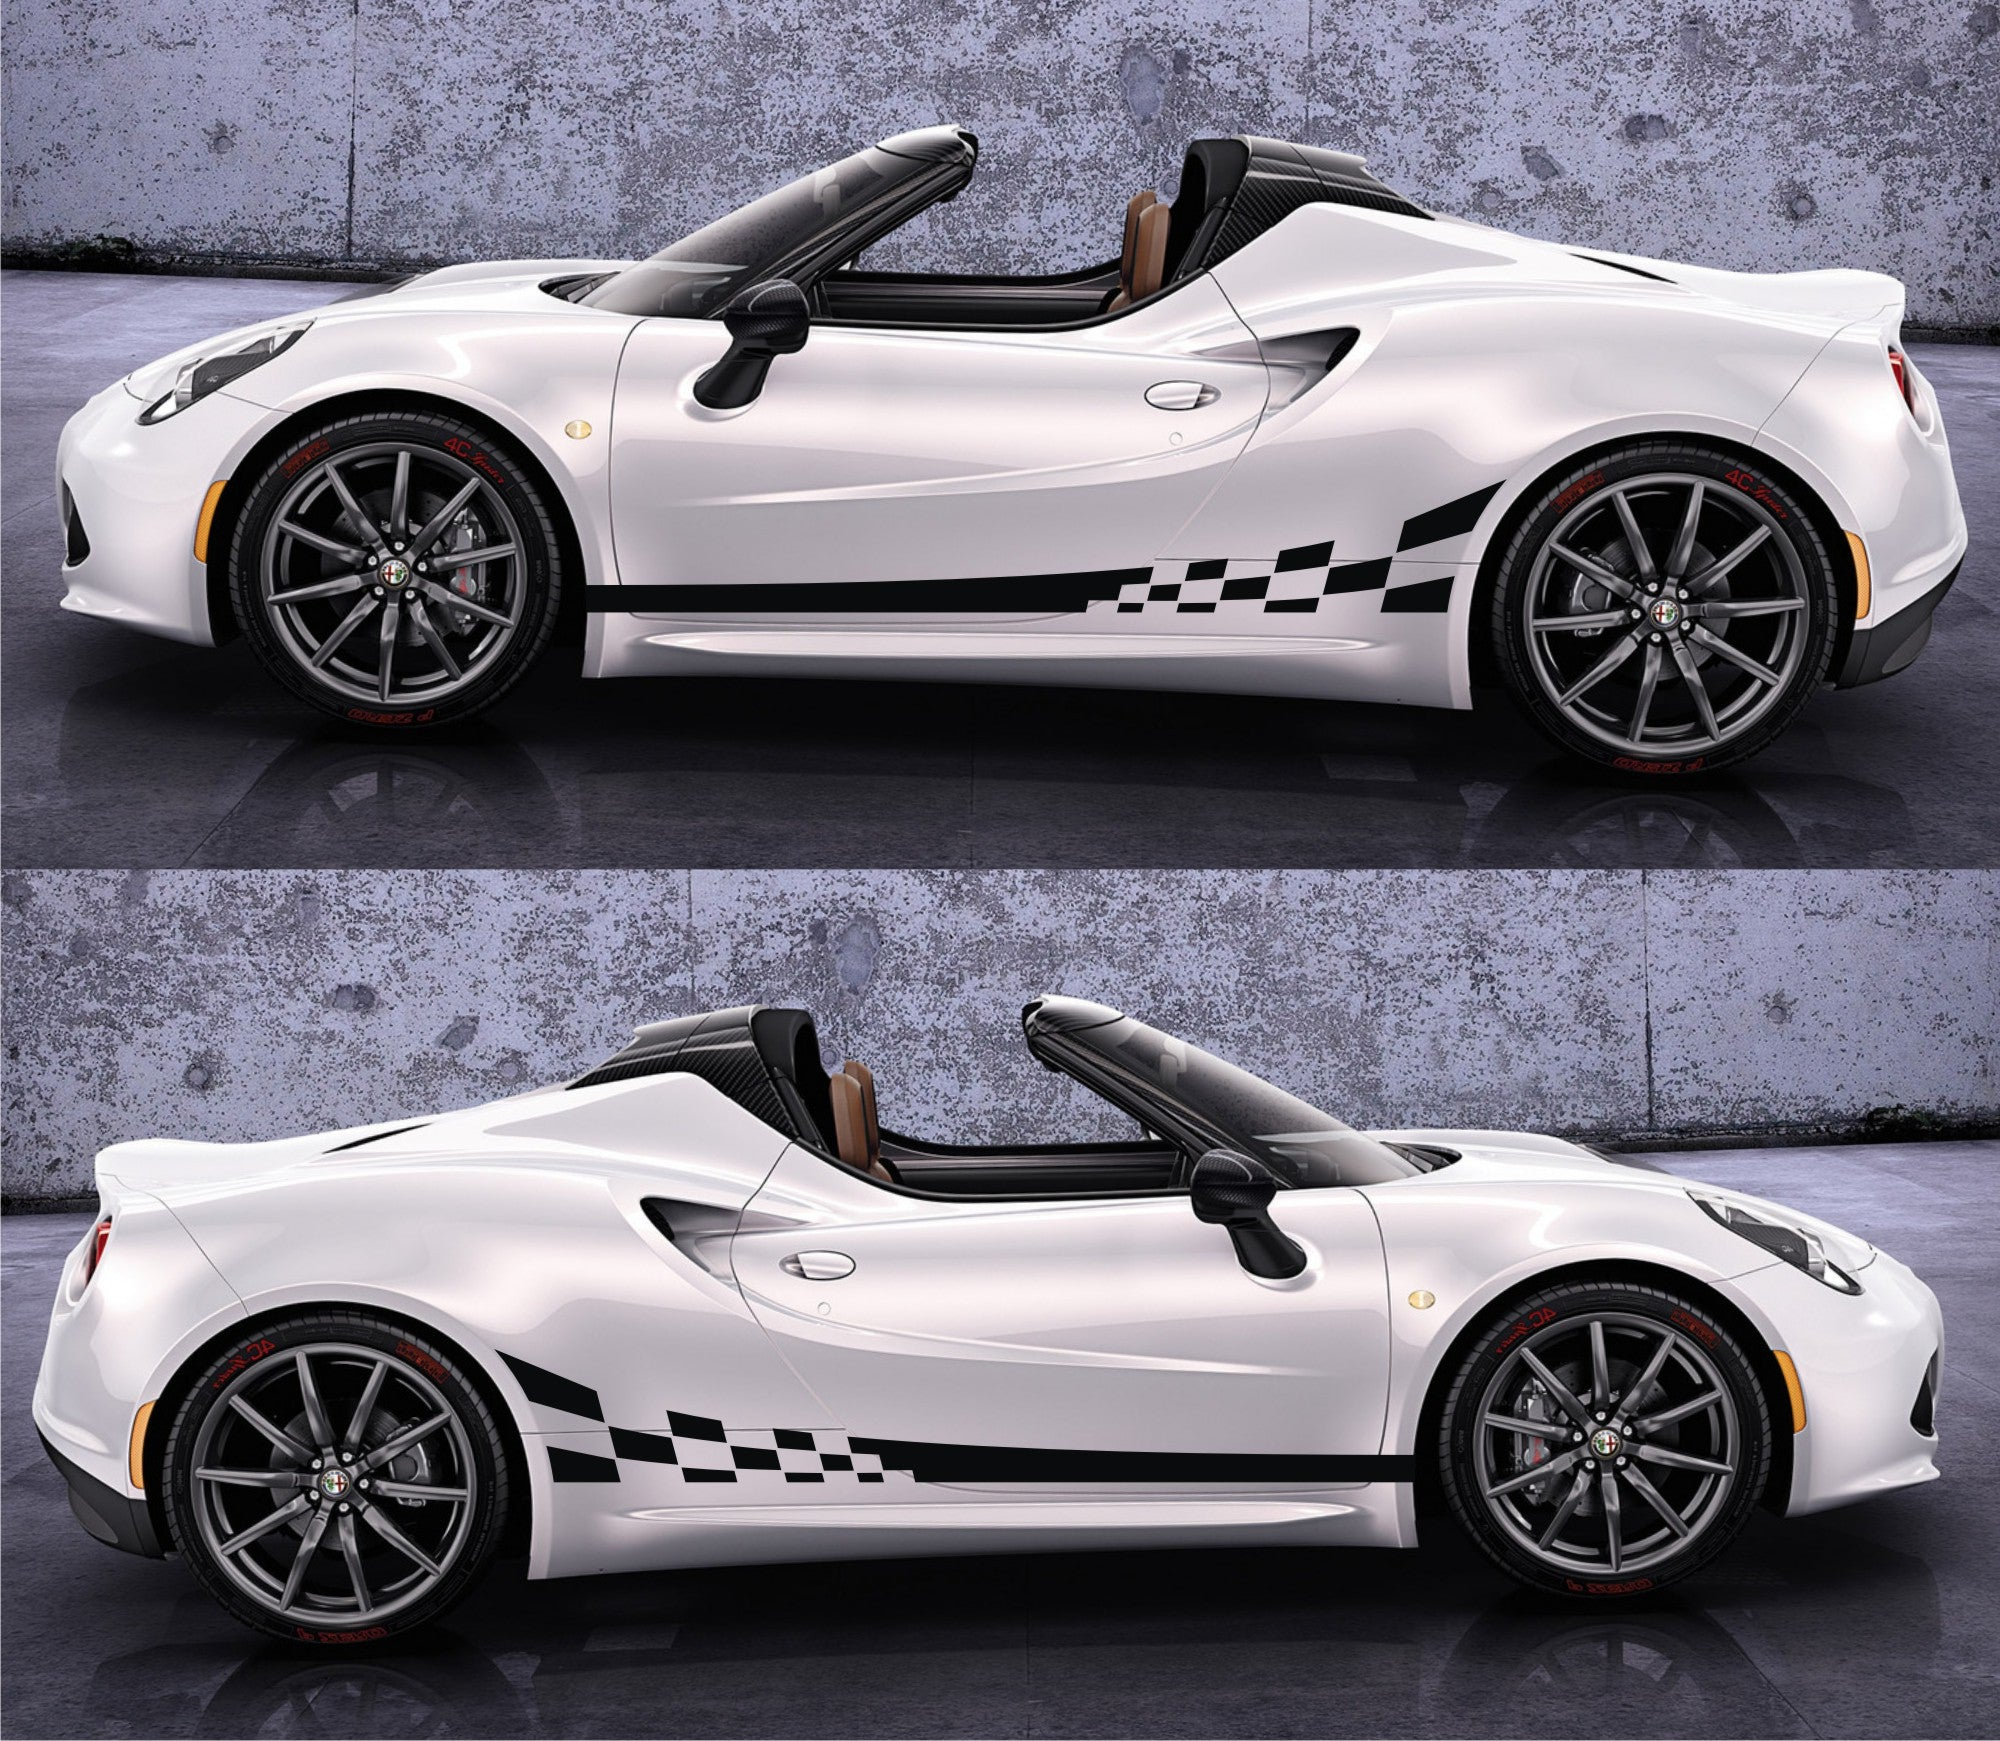 car stripes and graphic kit infinity270 alfa romeo 33 stradale spk 046 alfa romeo 4c racing stripes sticker decal kit type 960 sports car coupe competizione turbocharged italy spider 1 7l infinity270